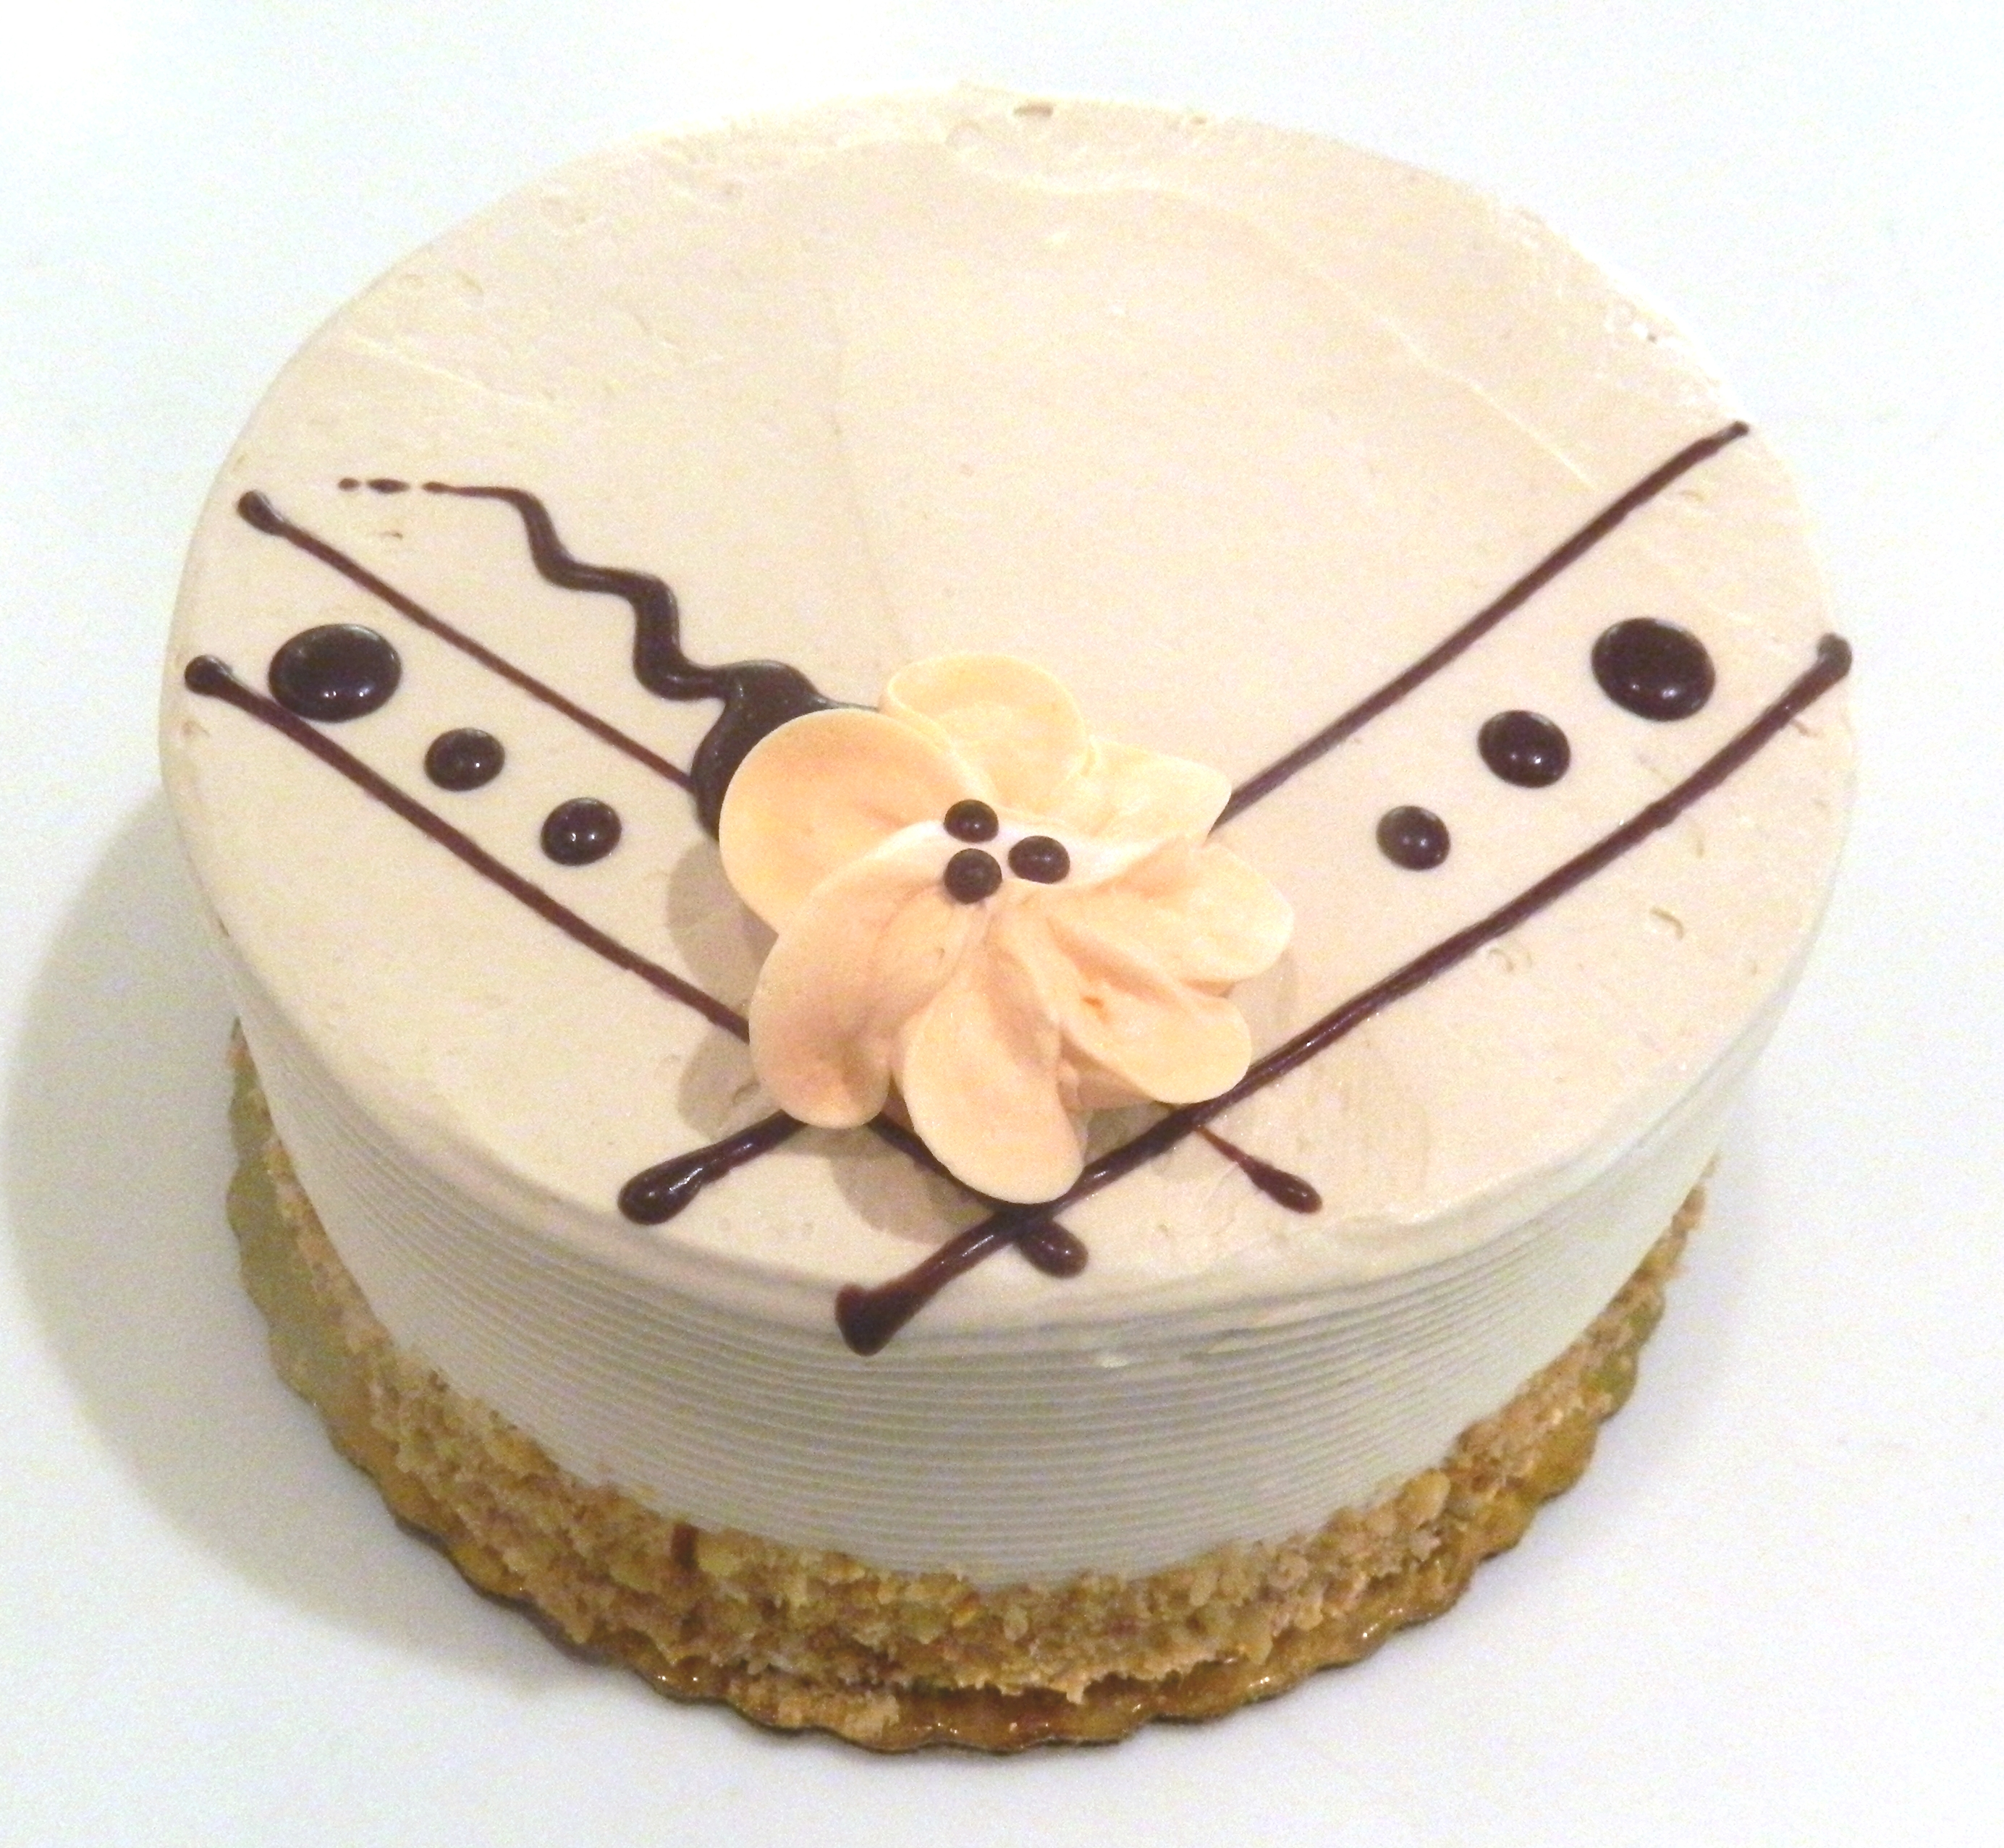 FRANKFORT TORTE CAKE: Delicious yellow cake, filled with hazelnut buttercream & ganache, finished off with a hazelnut buttercream.